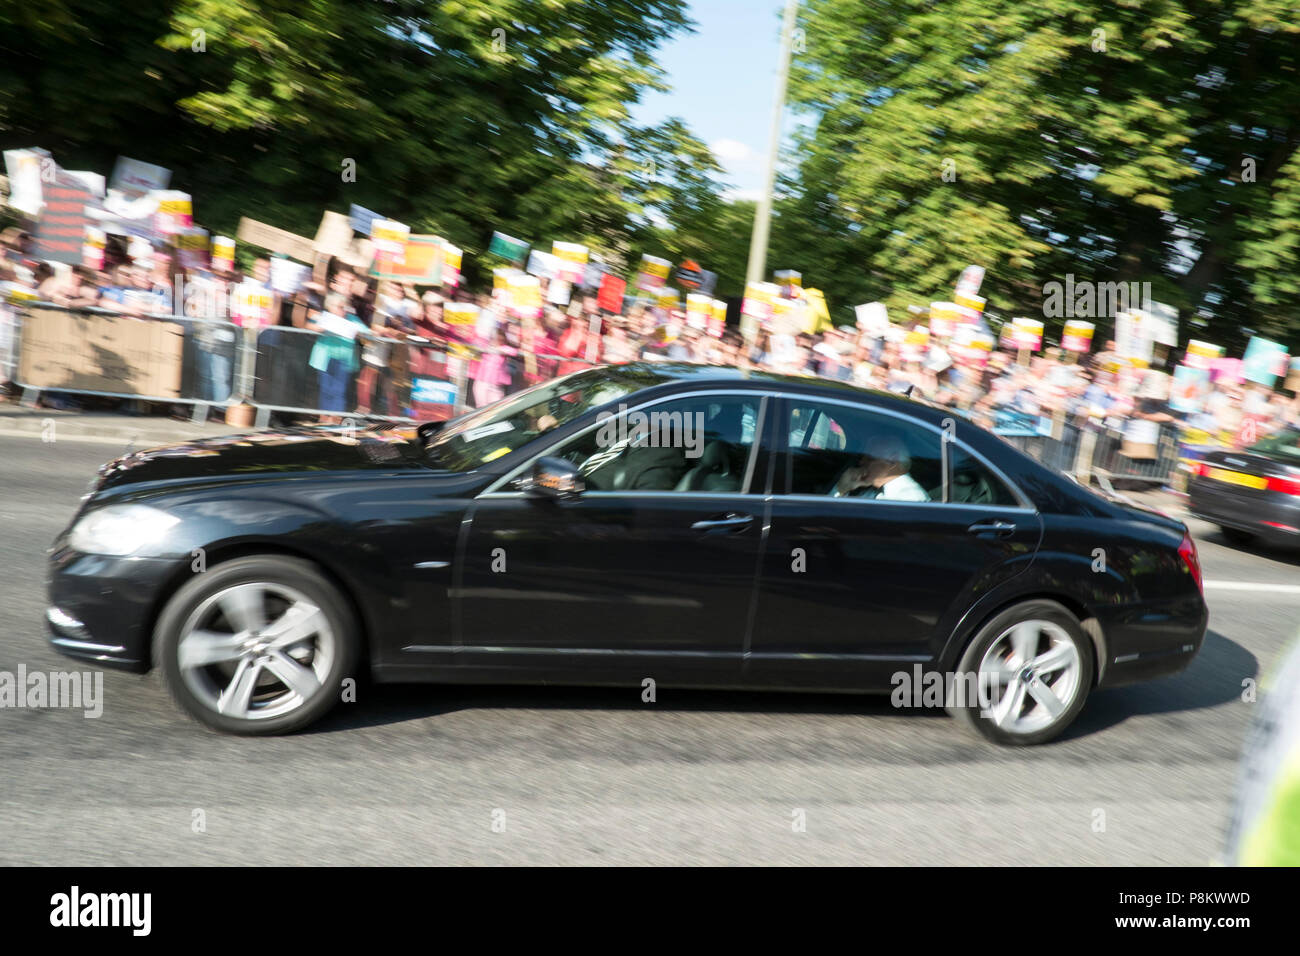 Guests arrive for dinner at Blenheim with President Trump.  They had to pass through a large crowd of well over two thousand shouting protestors who voiced their displeasure at the President's visit. Credit: adrian arbib/Alamy Live News - Stock Image